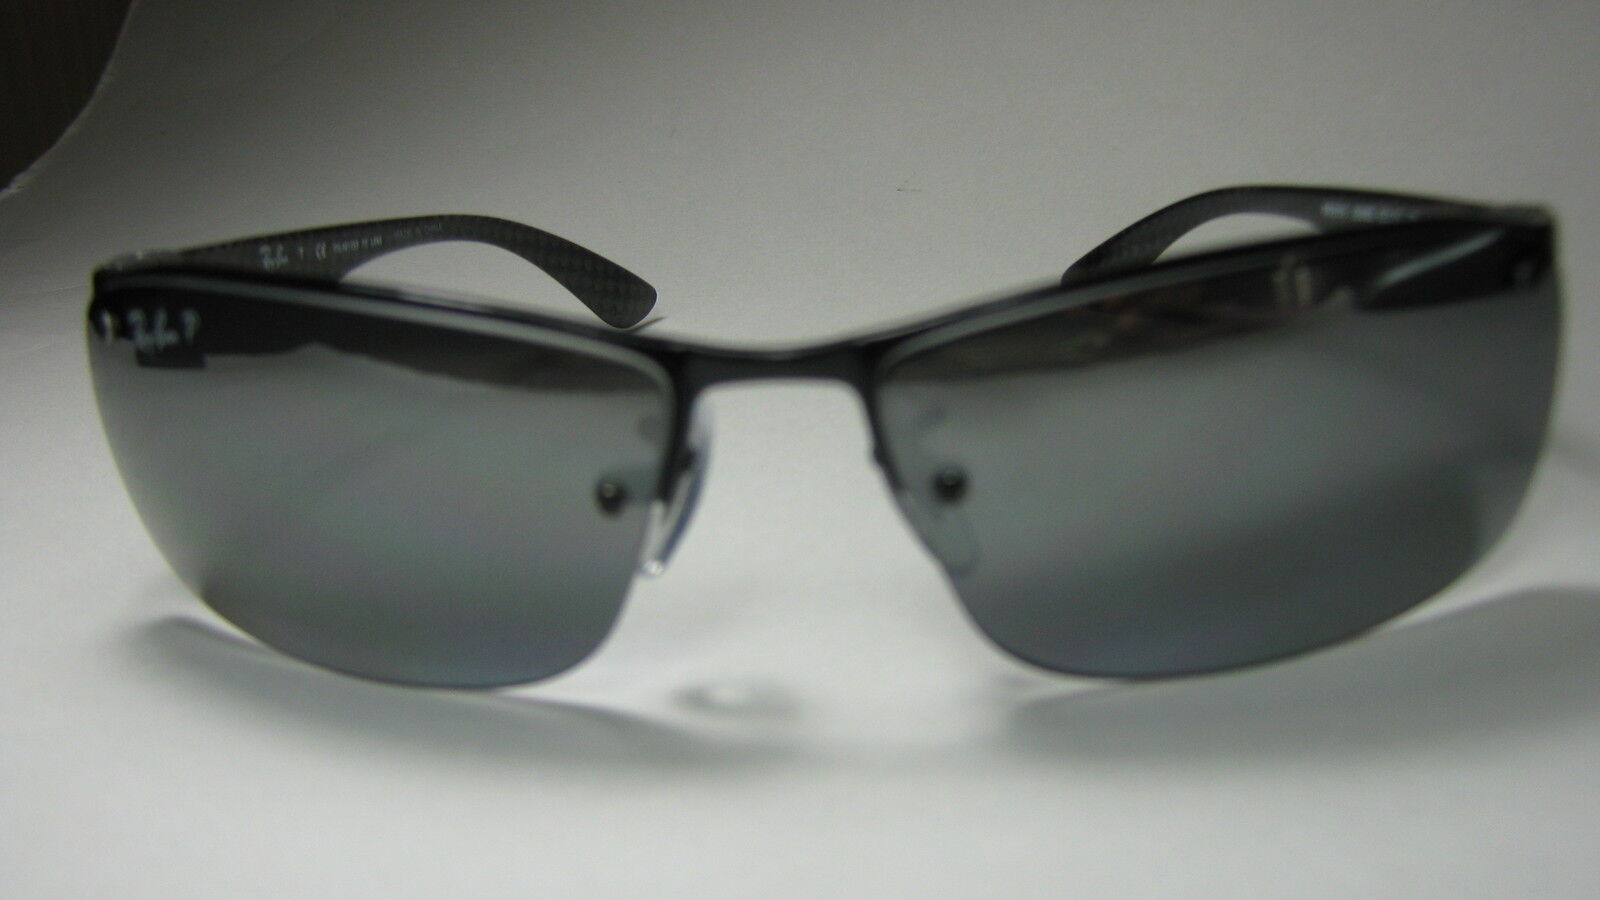 Lee's Sunglass Stores @ Ebay